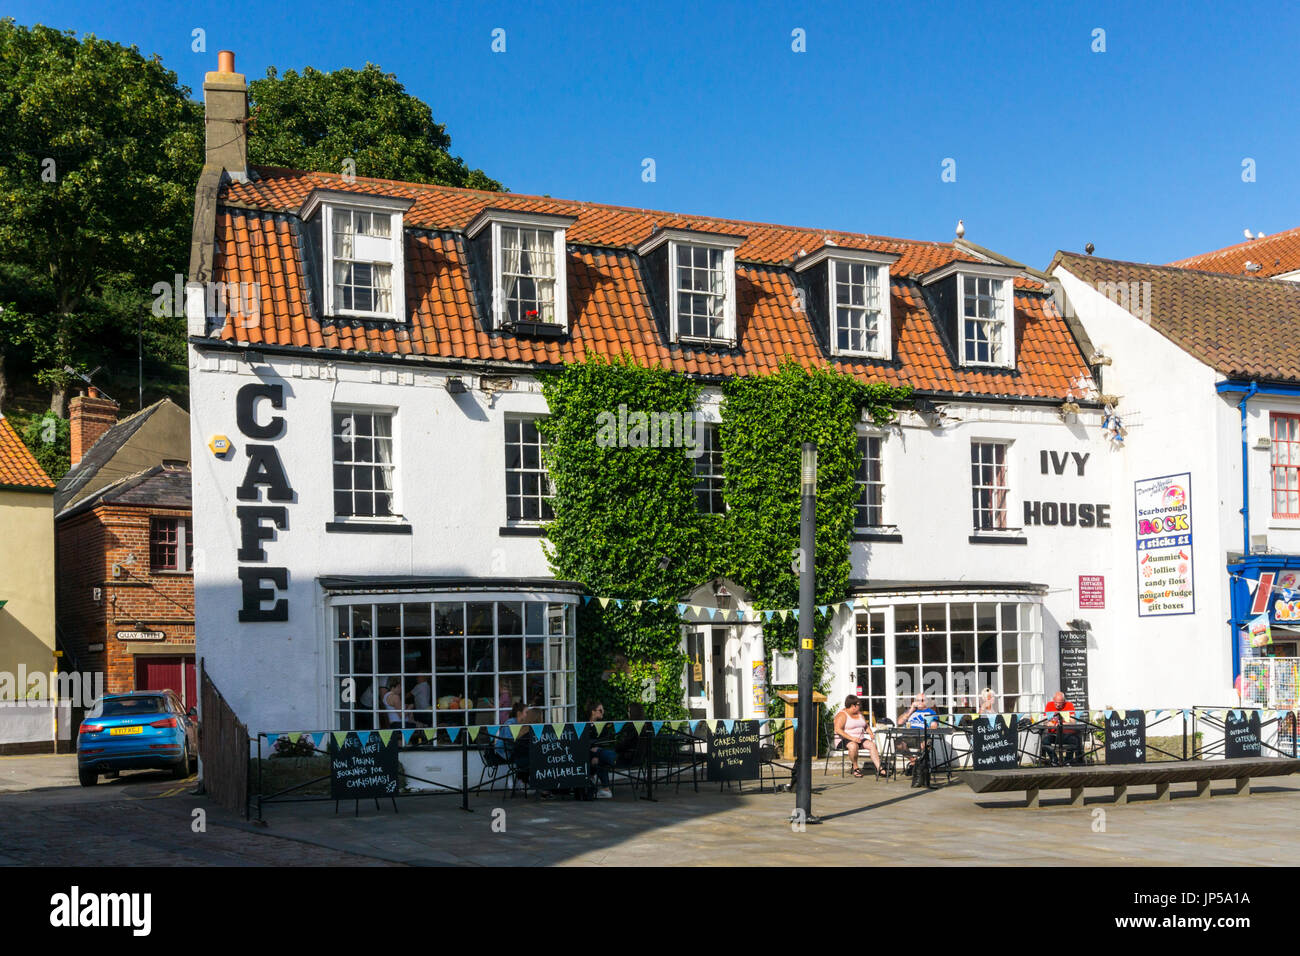 The Ivy House Cafe in Scarborough describes itself as a gastro tea room. - Stock Image